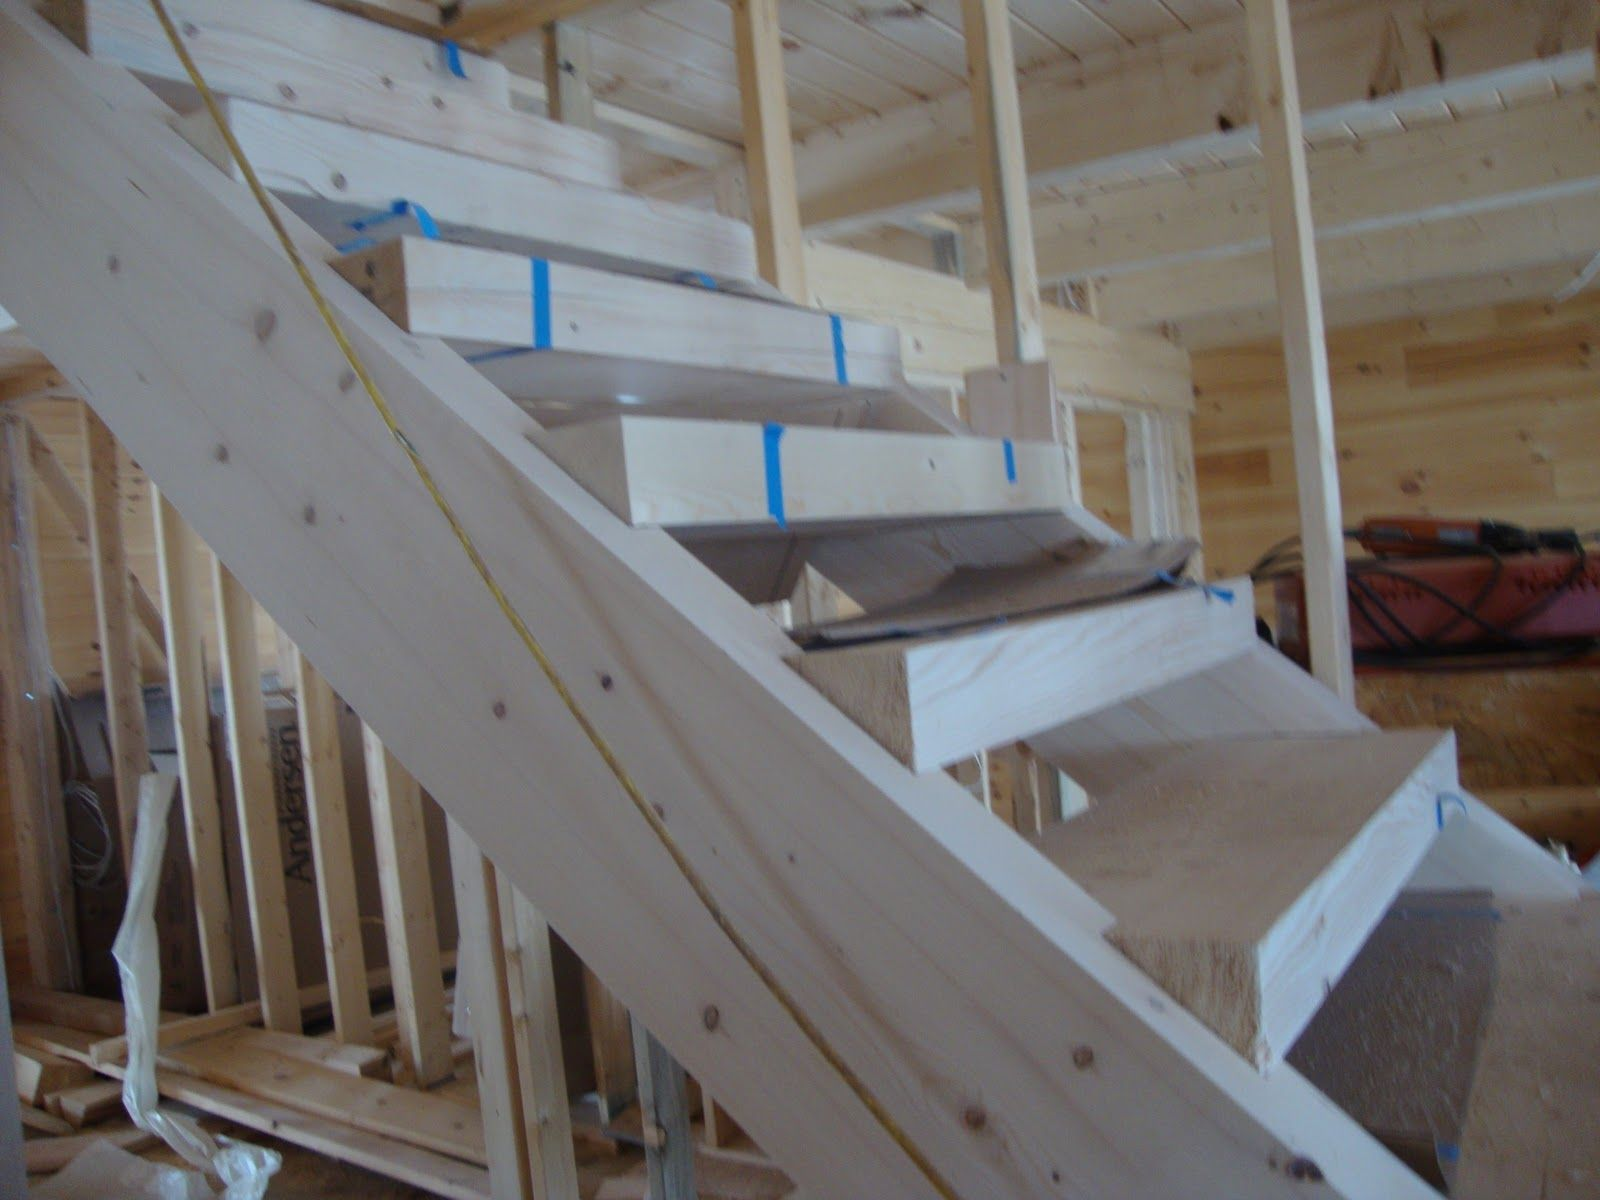 Basement Stair Designs Plans rustic staircase ideas staircase design plans rustic staircase